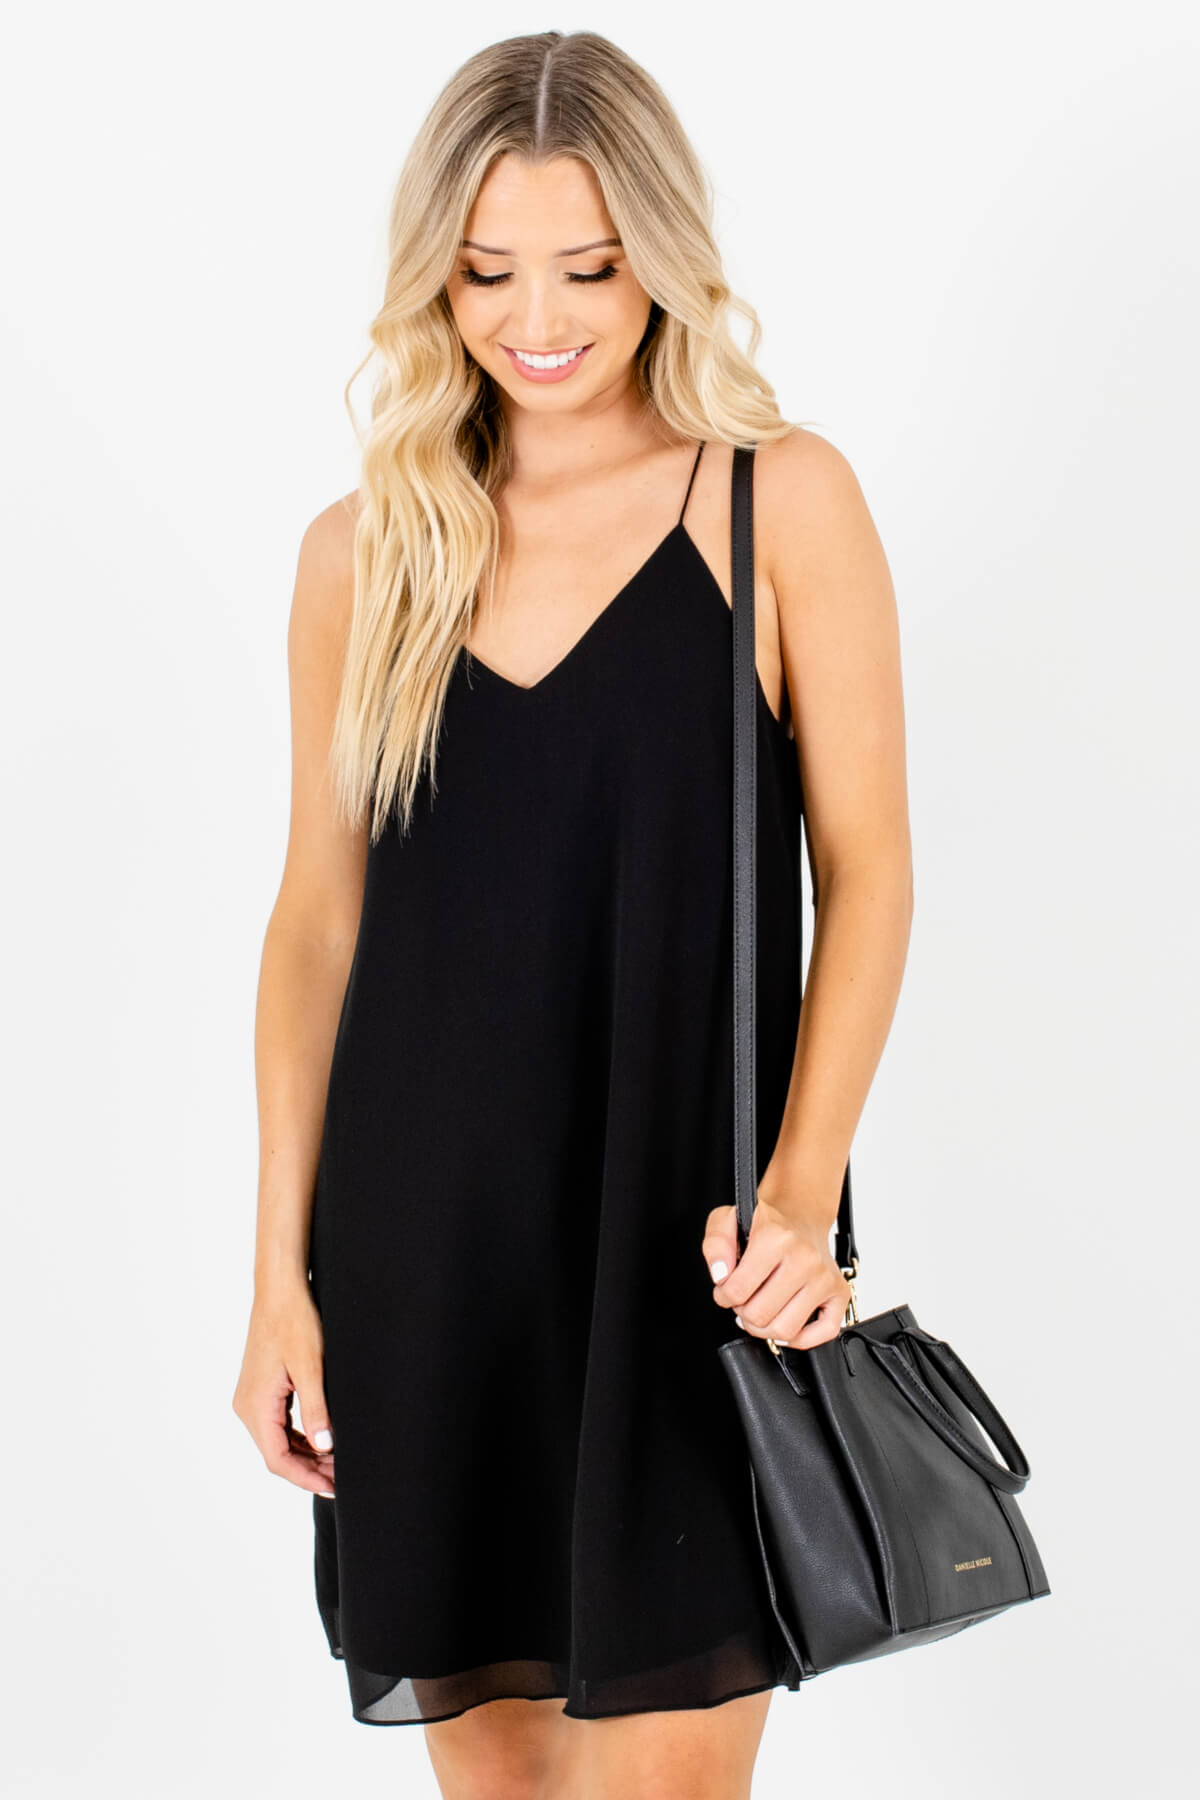 Black Back Pleated Accented Boutique Mini Dresses for Women